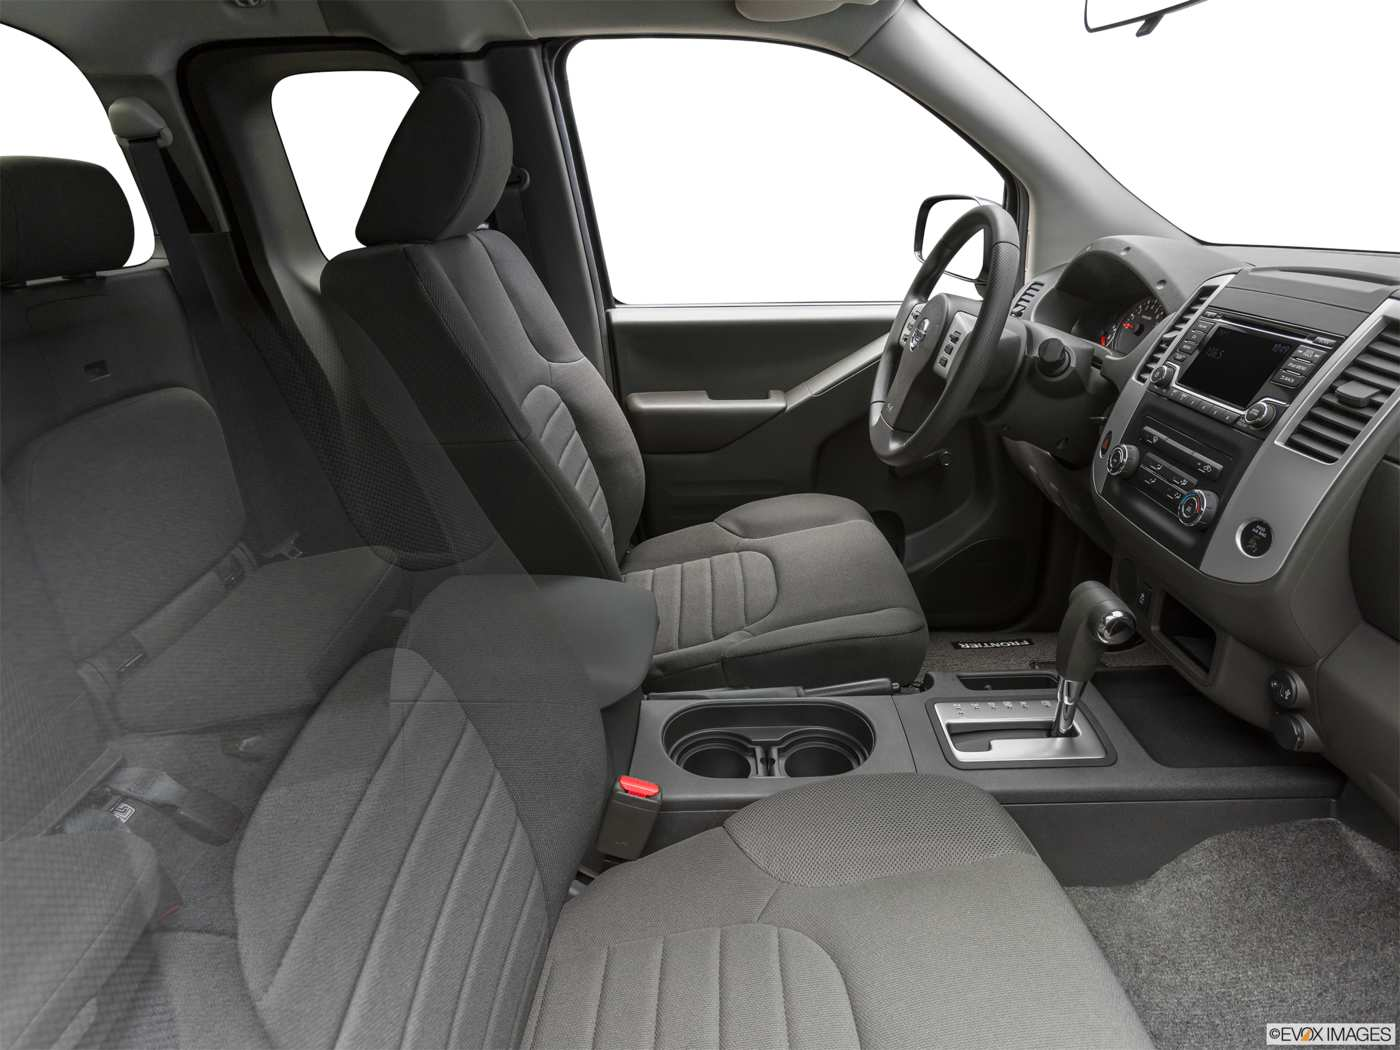 Nissan Frontier Redesign likewise Kia Pickup Truck Review X together with Honda Civic also Nissan Frontier Exterior Concept additionally Jeep Wrangler Brute Pickup Rear. on nissan frontier engine specs